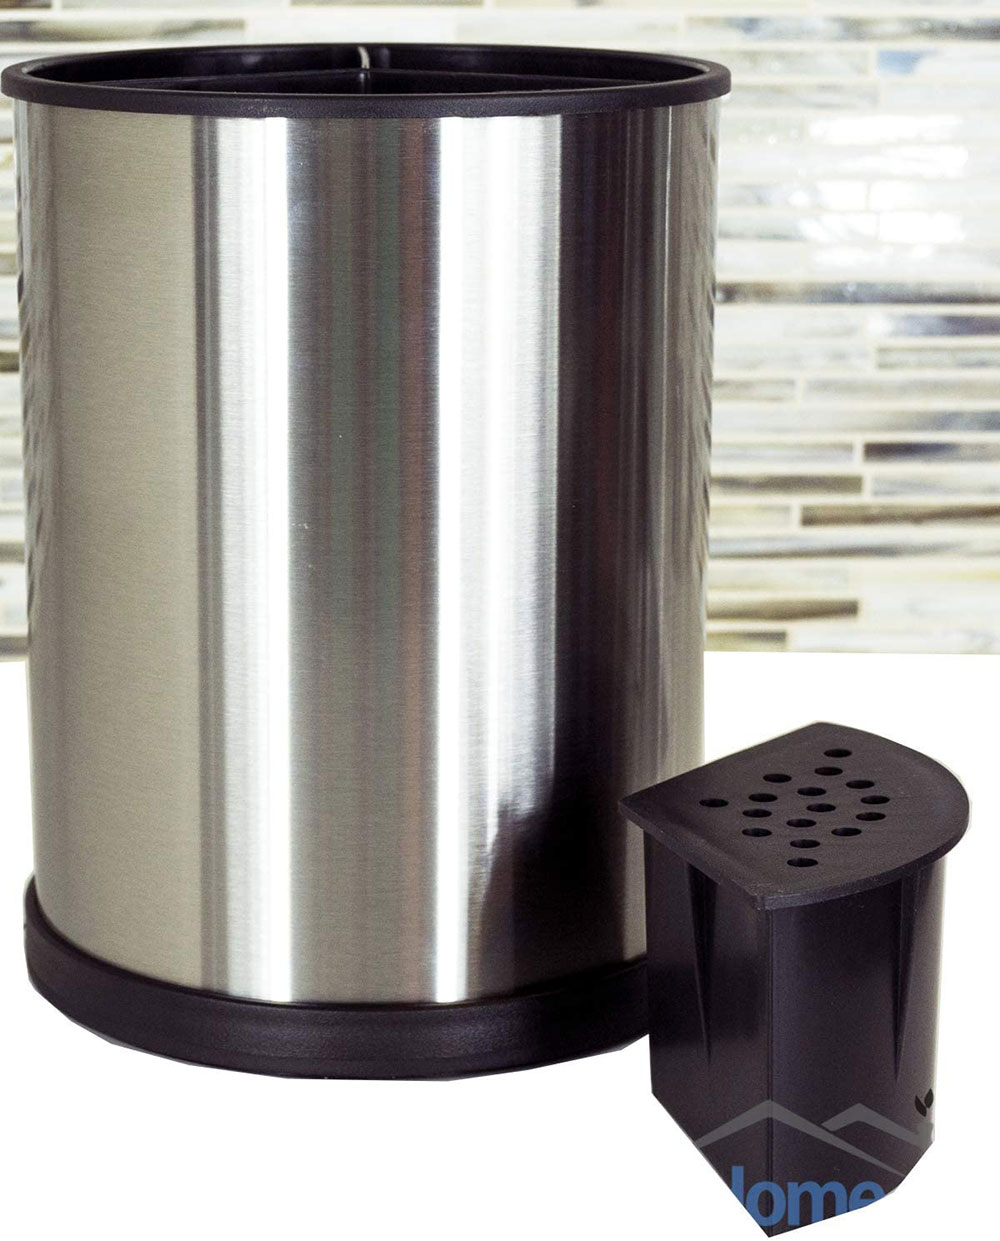 Misc-Home-Rotating-Cooking-Utensil holder-Smart organization What is the best kitchen utensil holder out there?